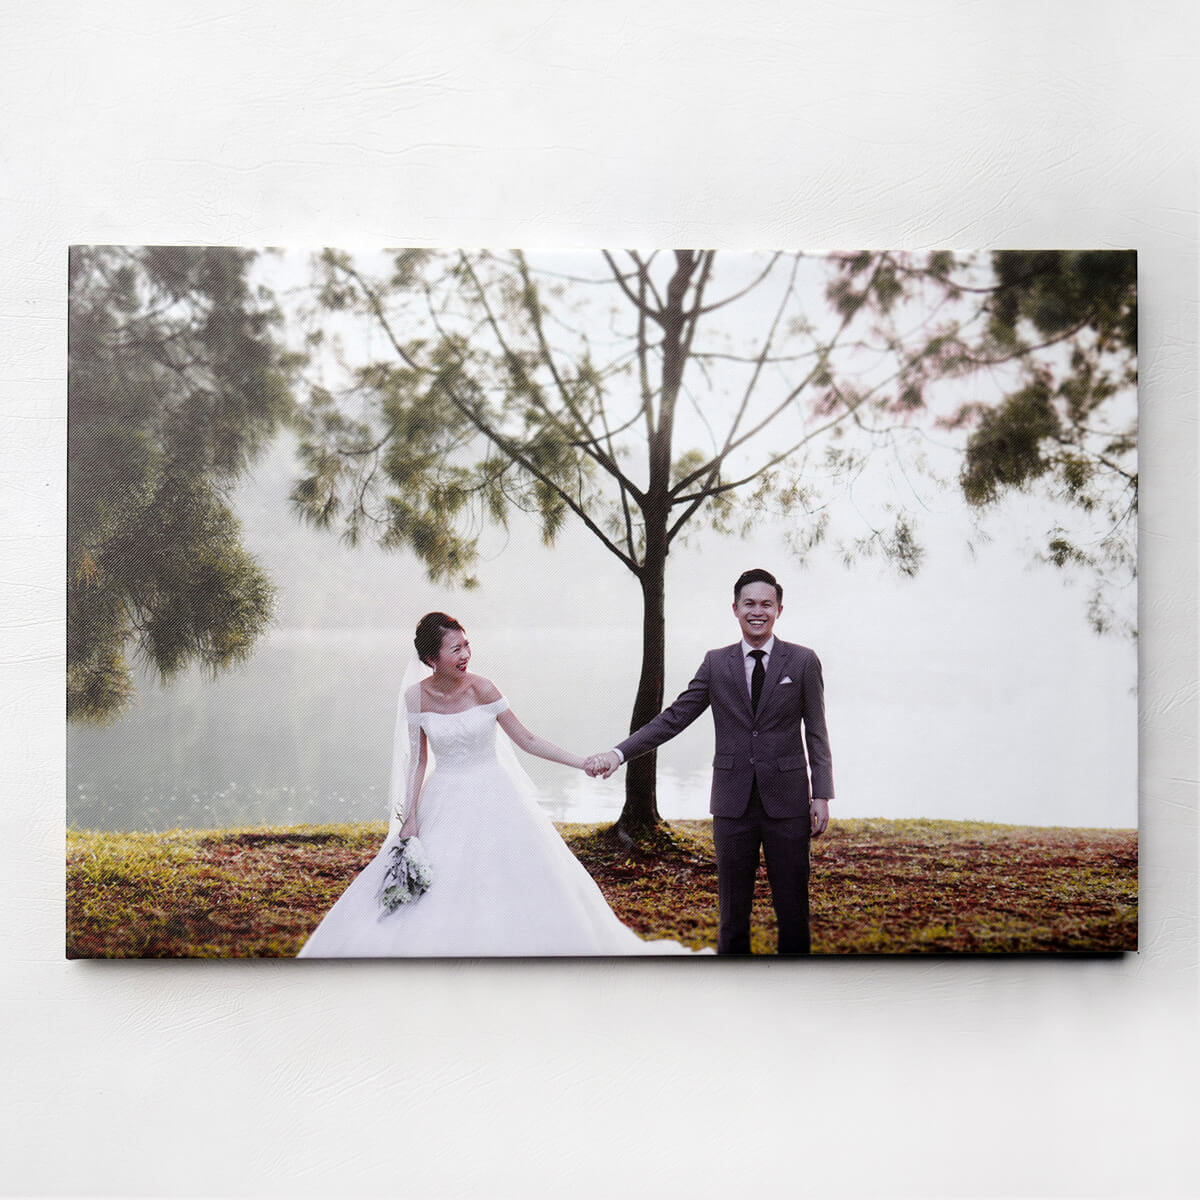 GW WALL CANVAS 24x36 (1 pc)